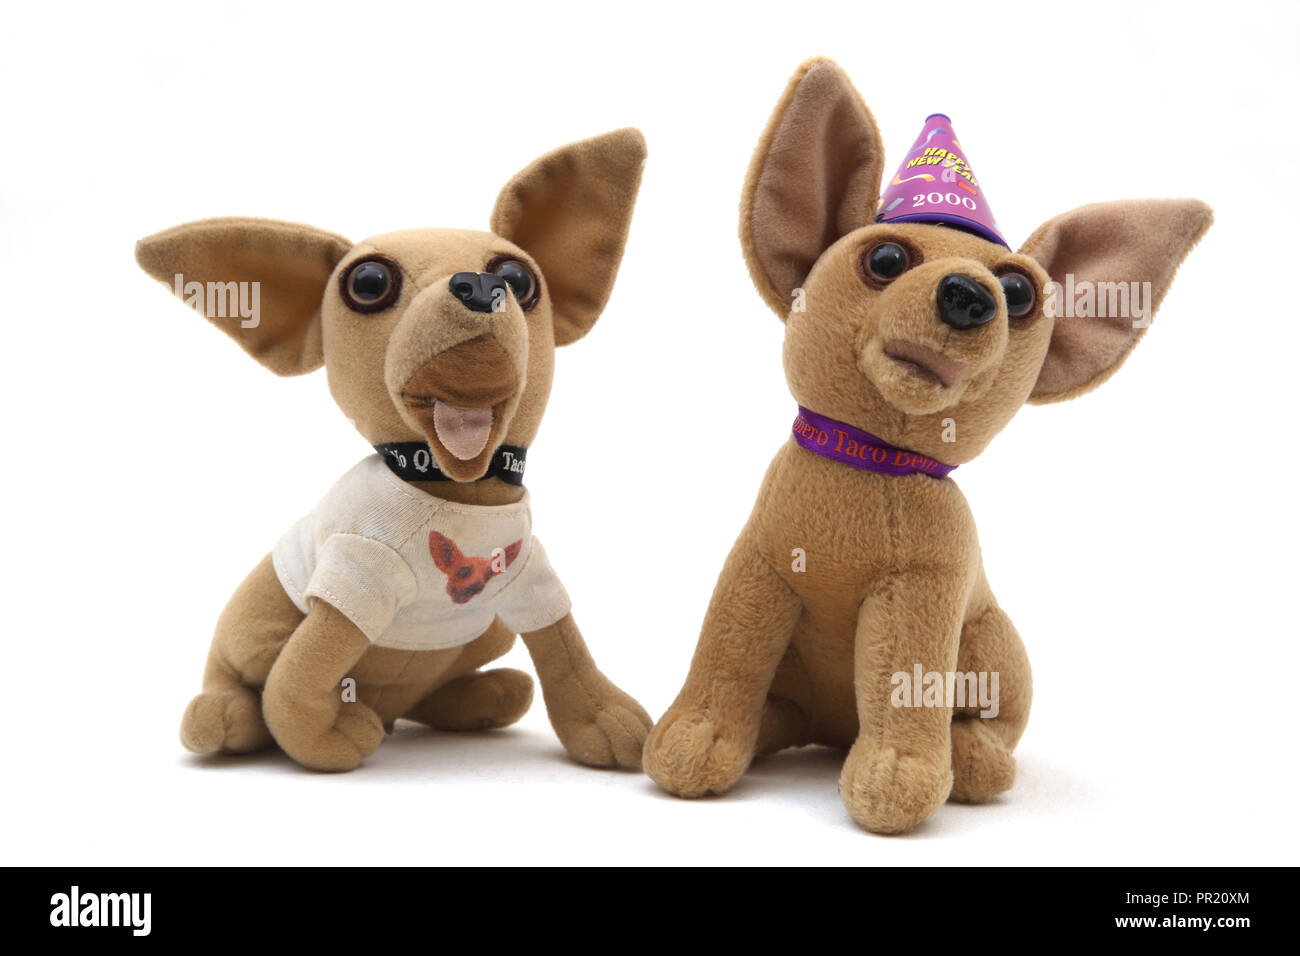 Promotional Taco Bell Chihuahua Dogs Collectable Toys - Stock Image